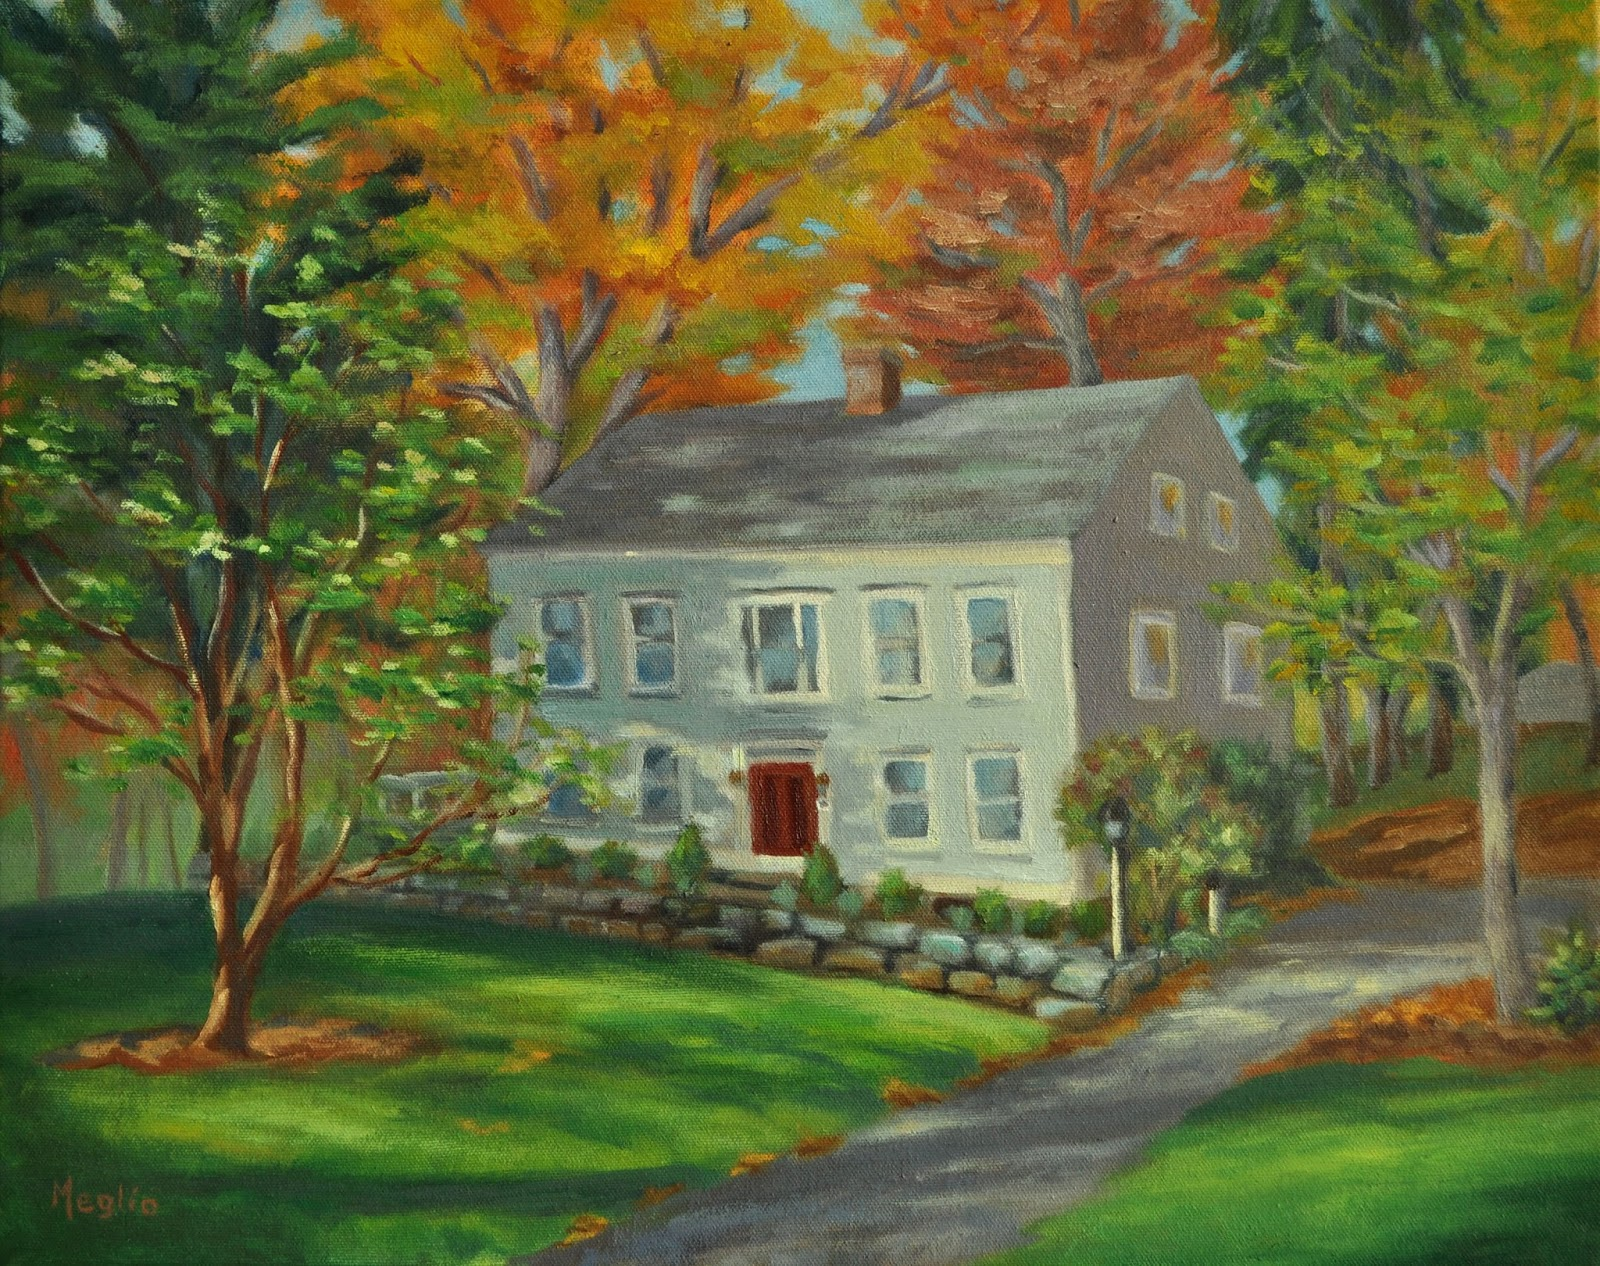 A painted house essay